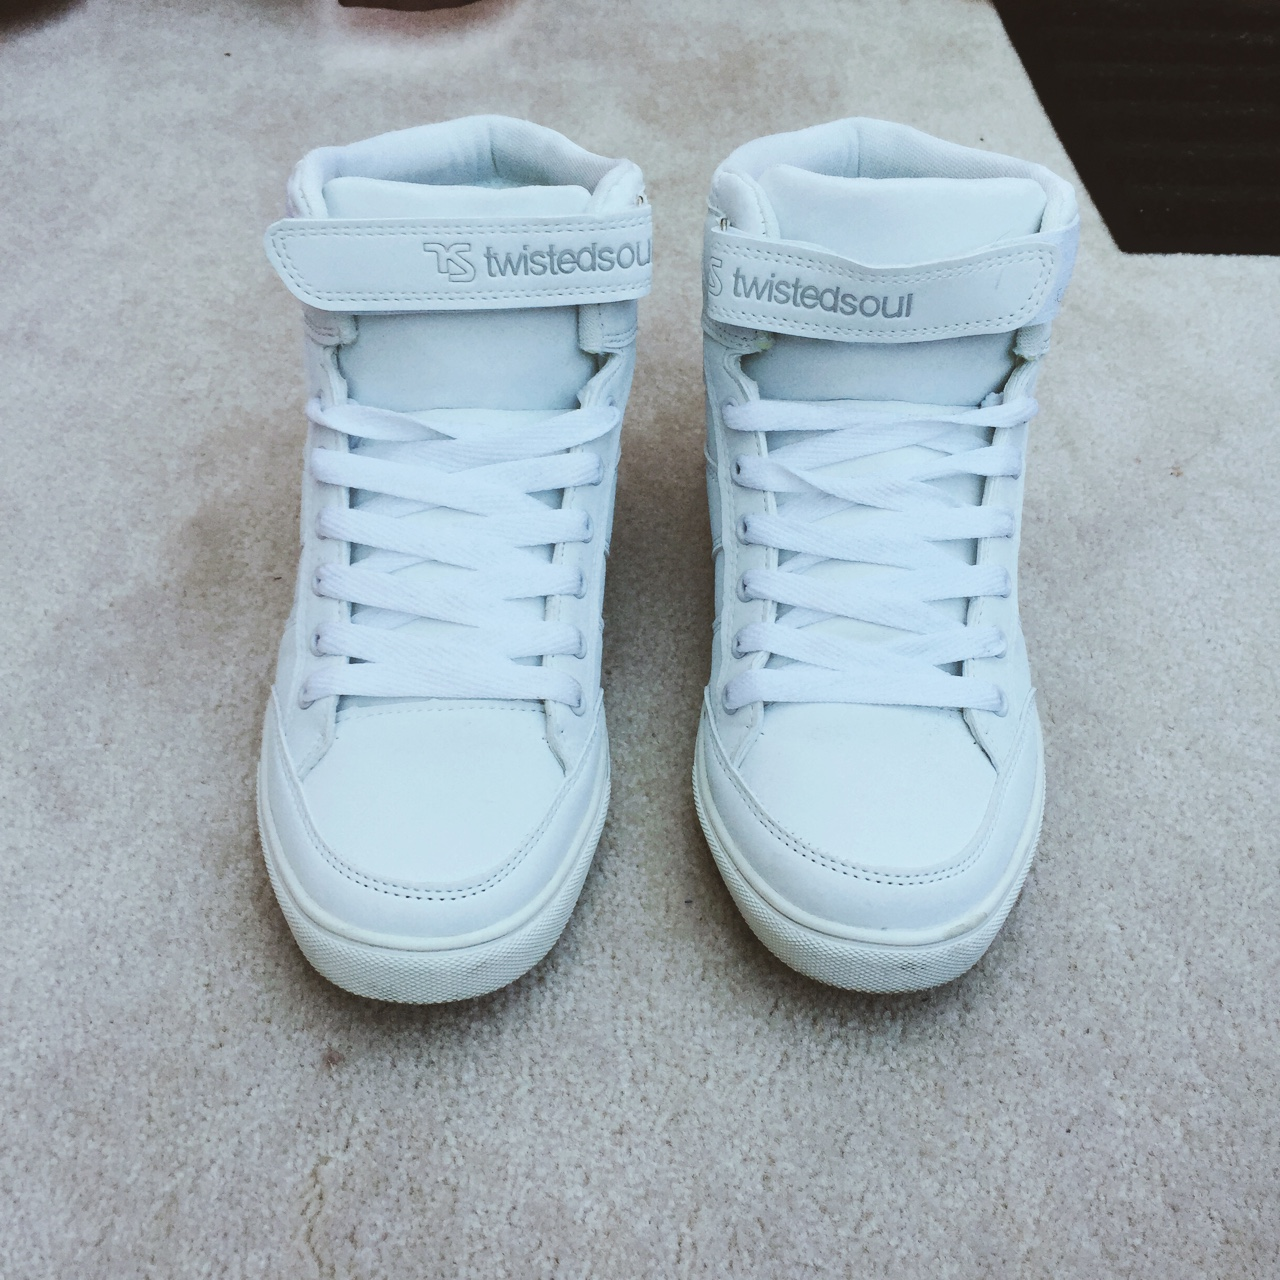 White Twisted soul high top trainers